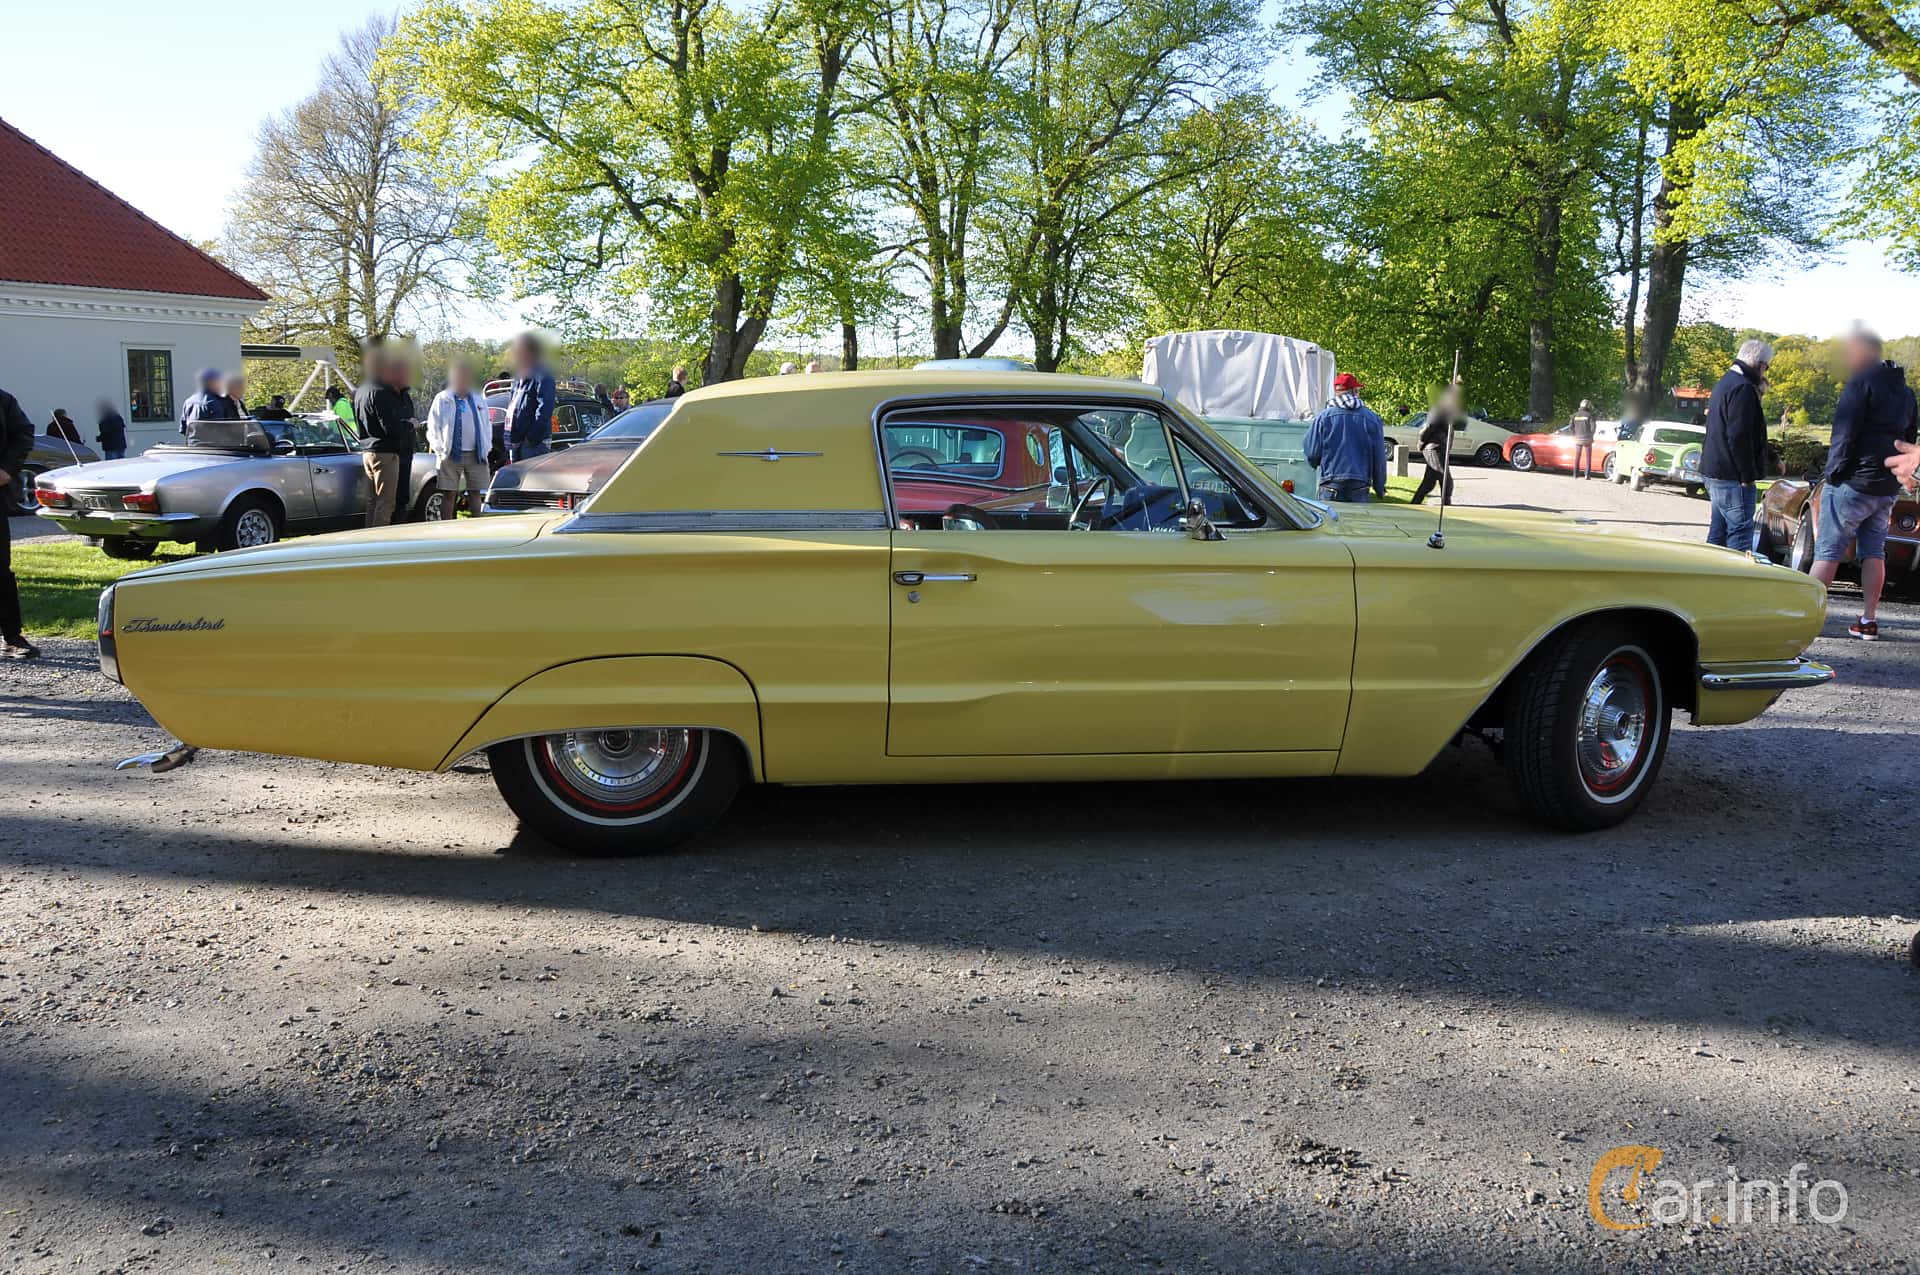 Ford Thunderbird Hardtop 6.4 V8 Automatic, 305hp, 1966